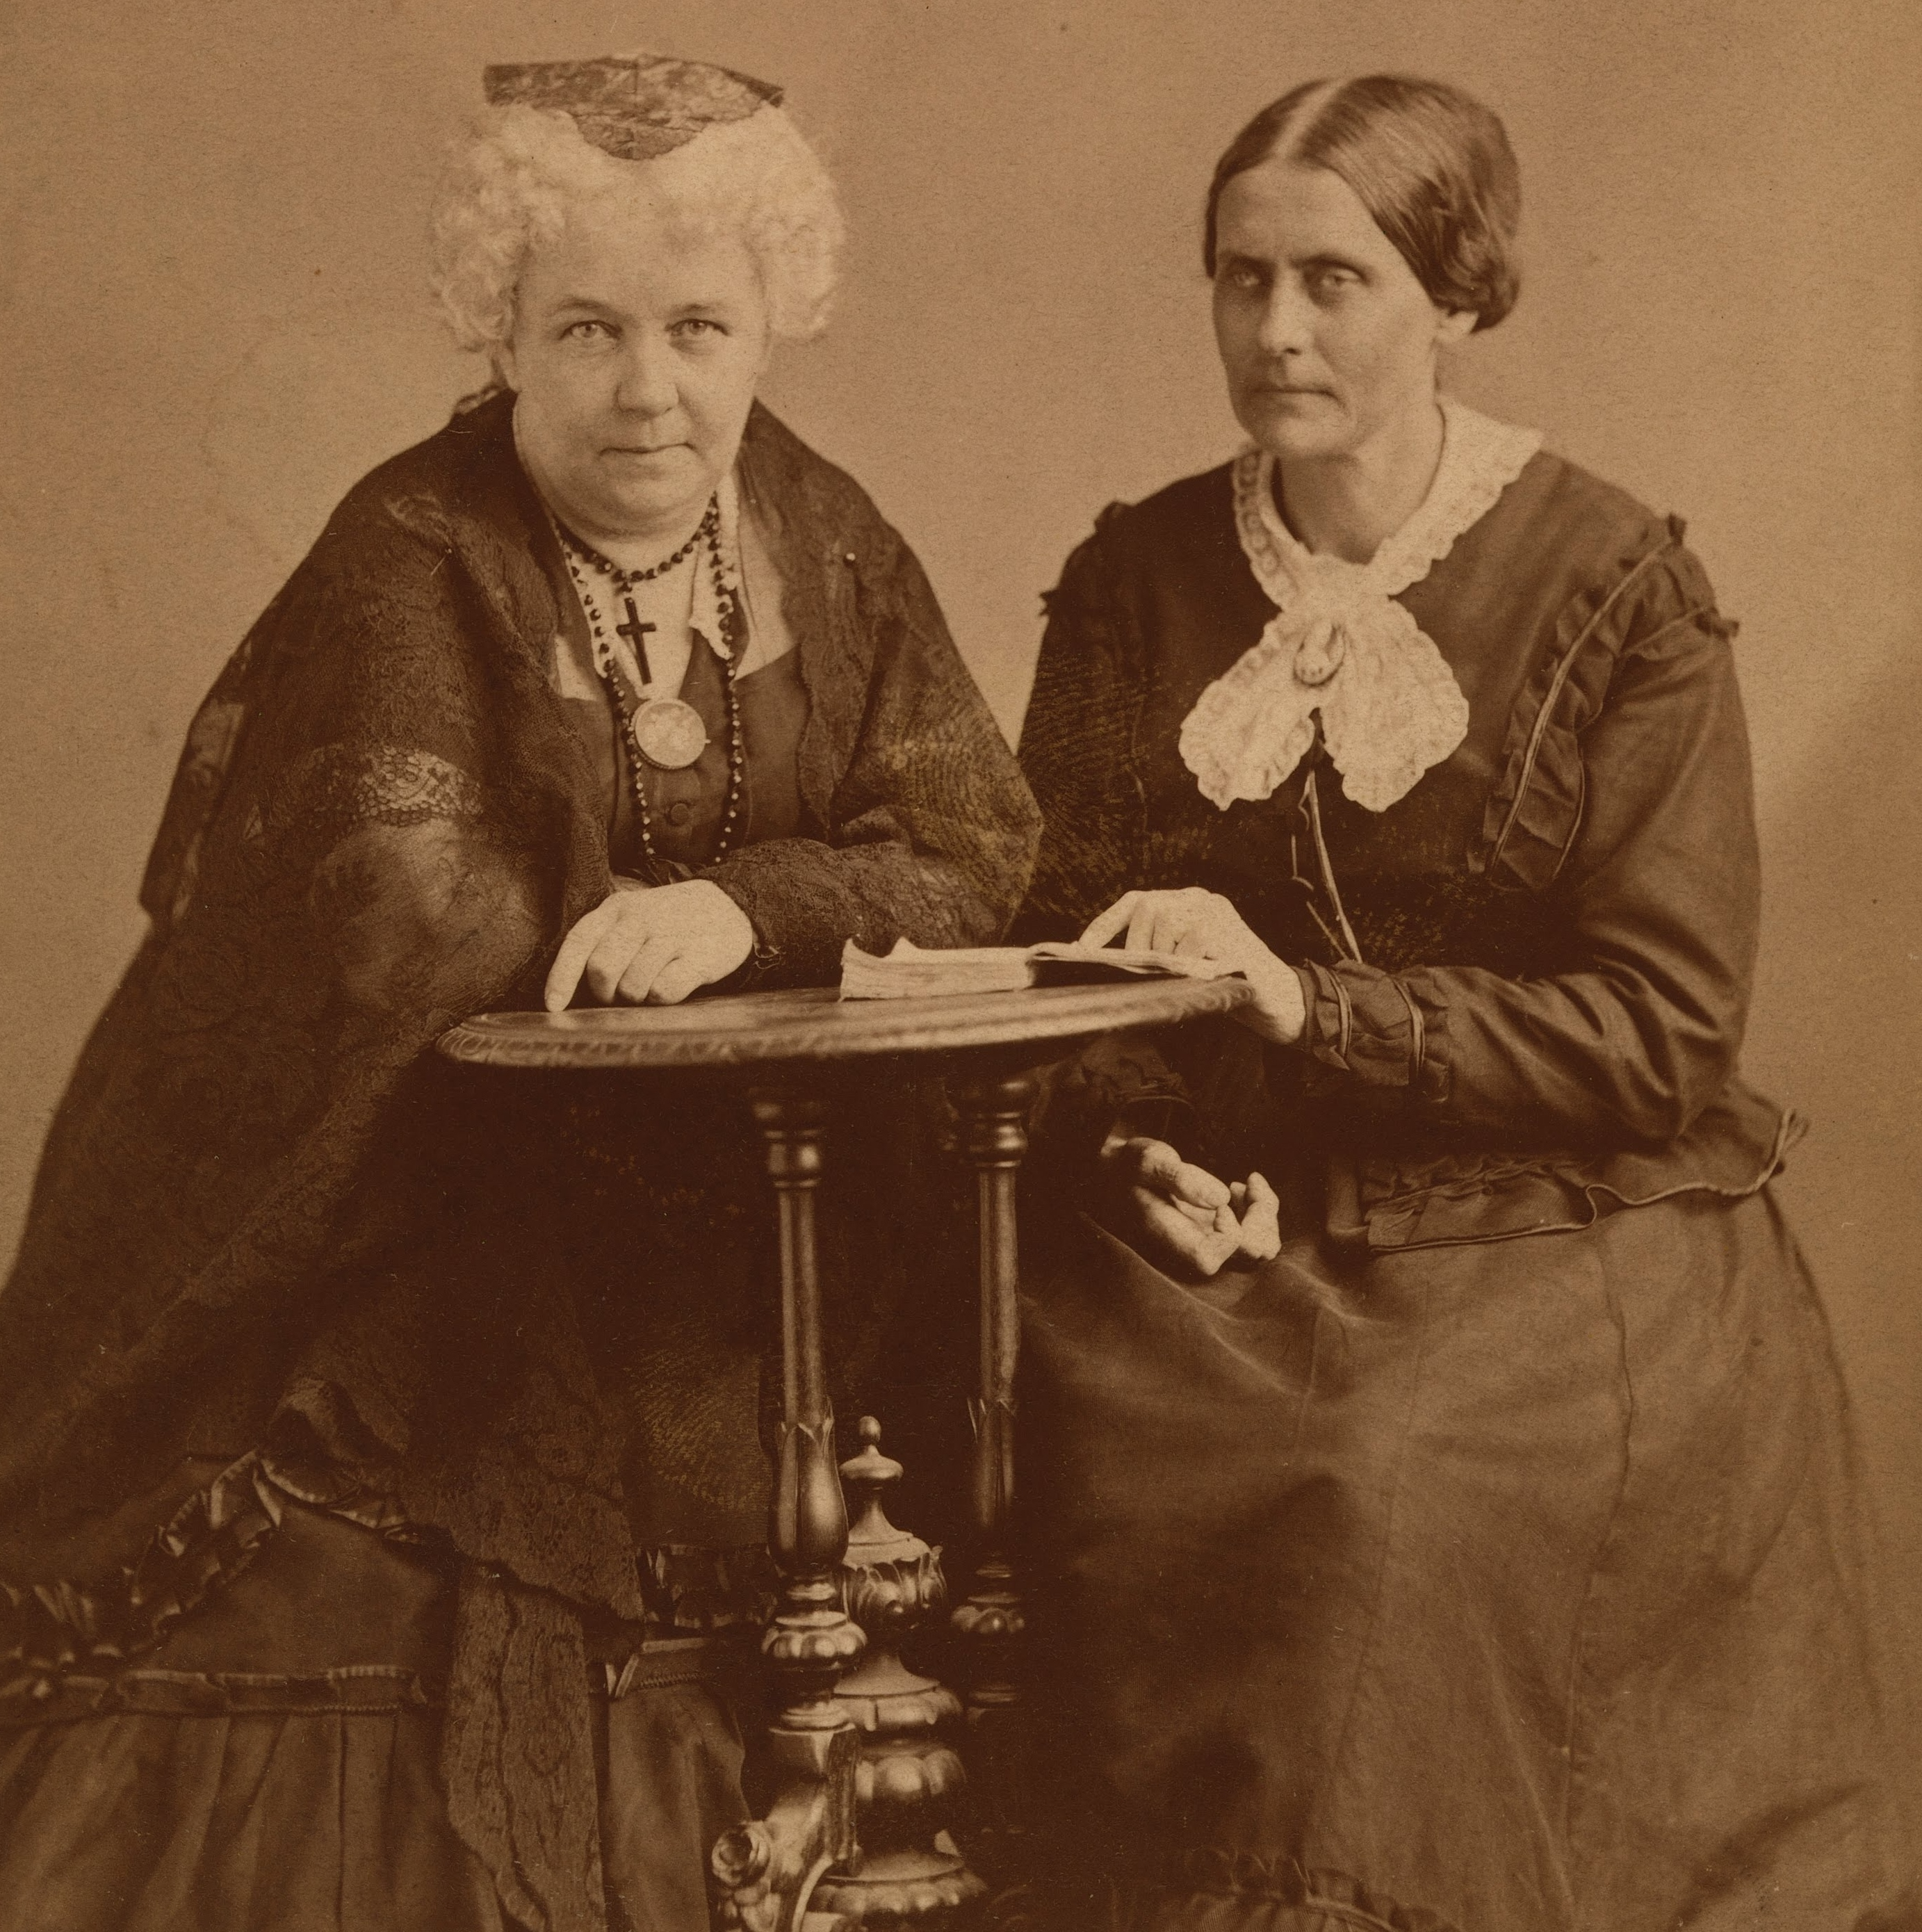 elizabeth cady stanton biography essay Elizabeth cady stanton biography activist, women's rights activist (1815–1902) elizabeth cady stanton was an early leader of the woman's rights movement, writing the declaration of sentiments as.